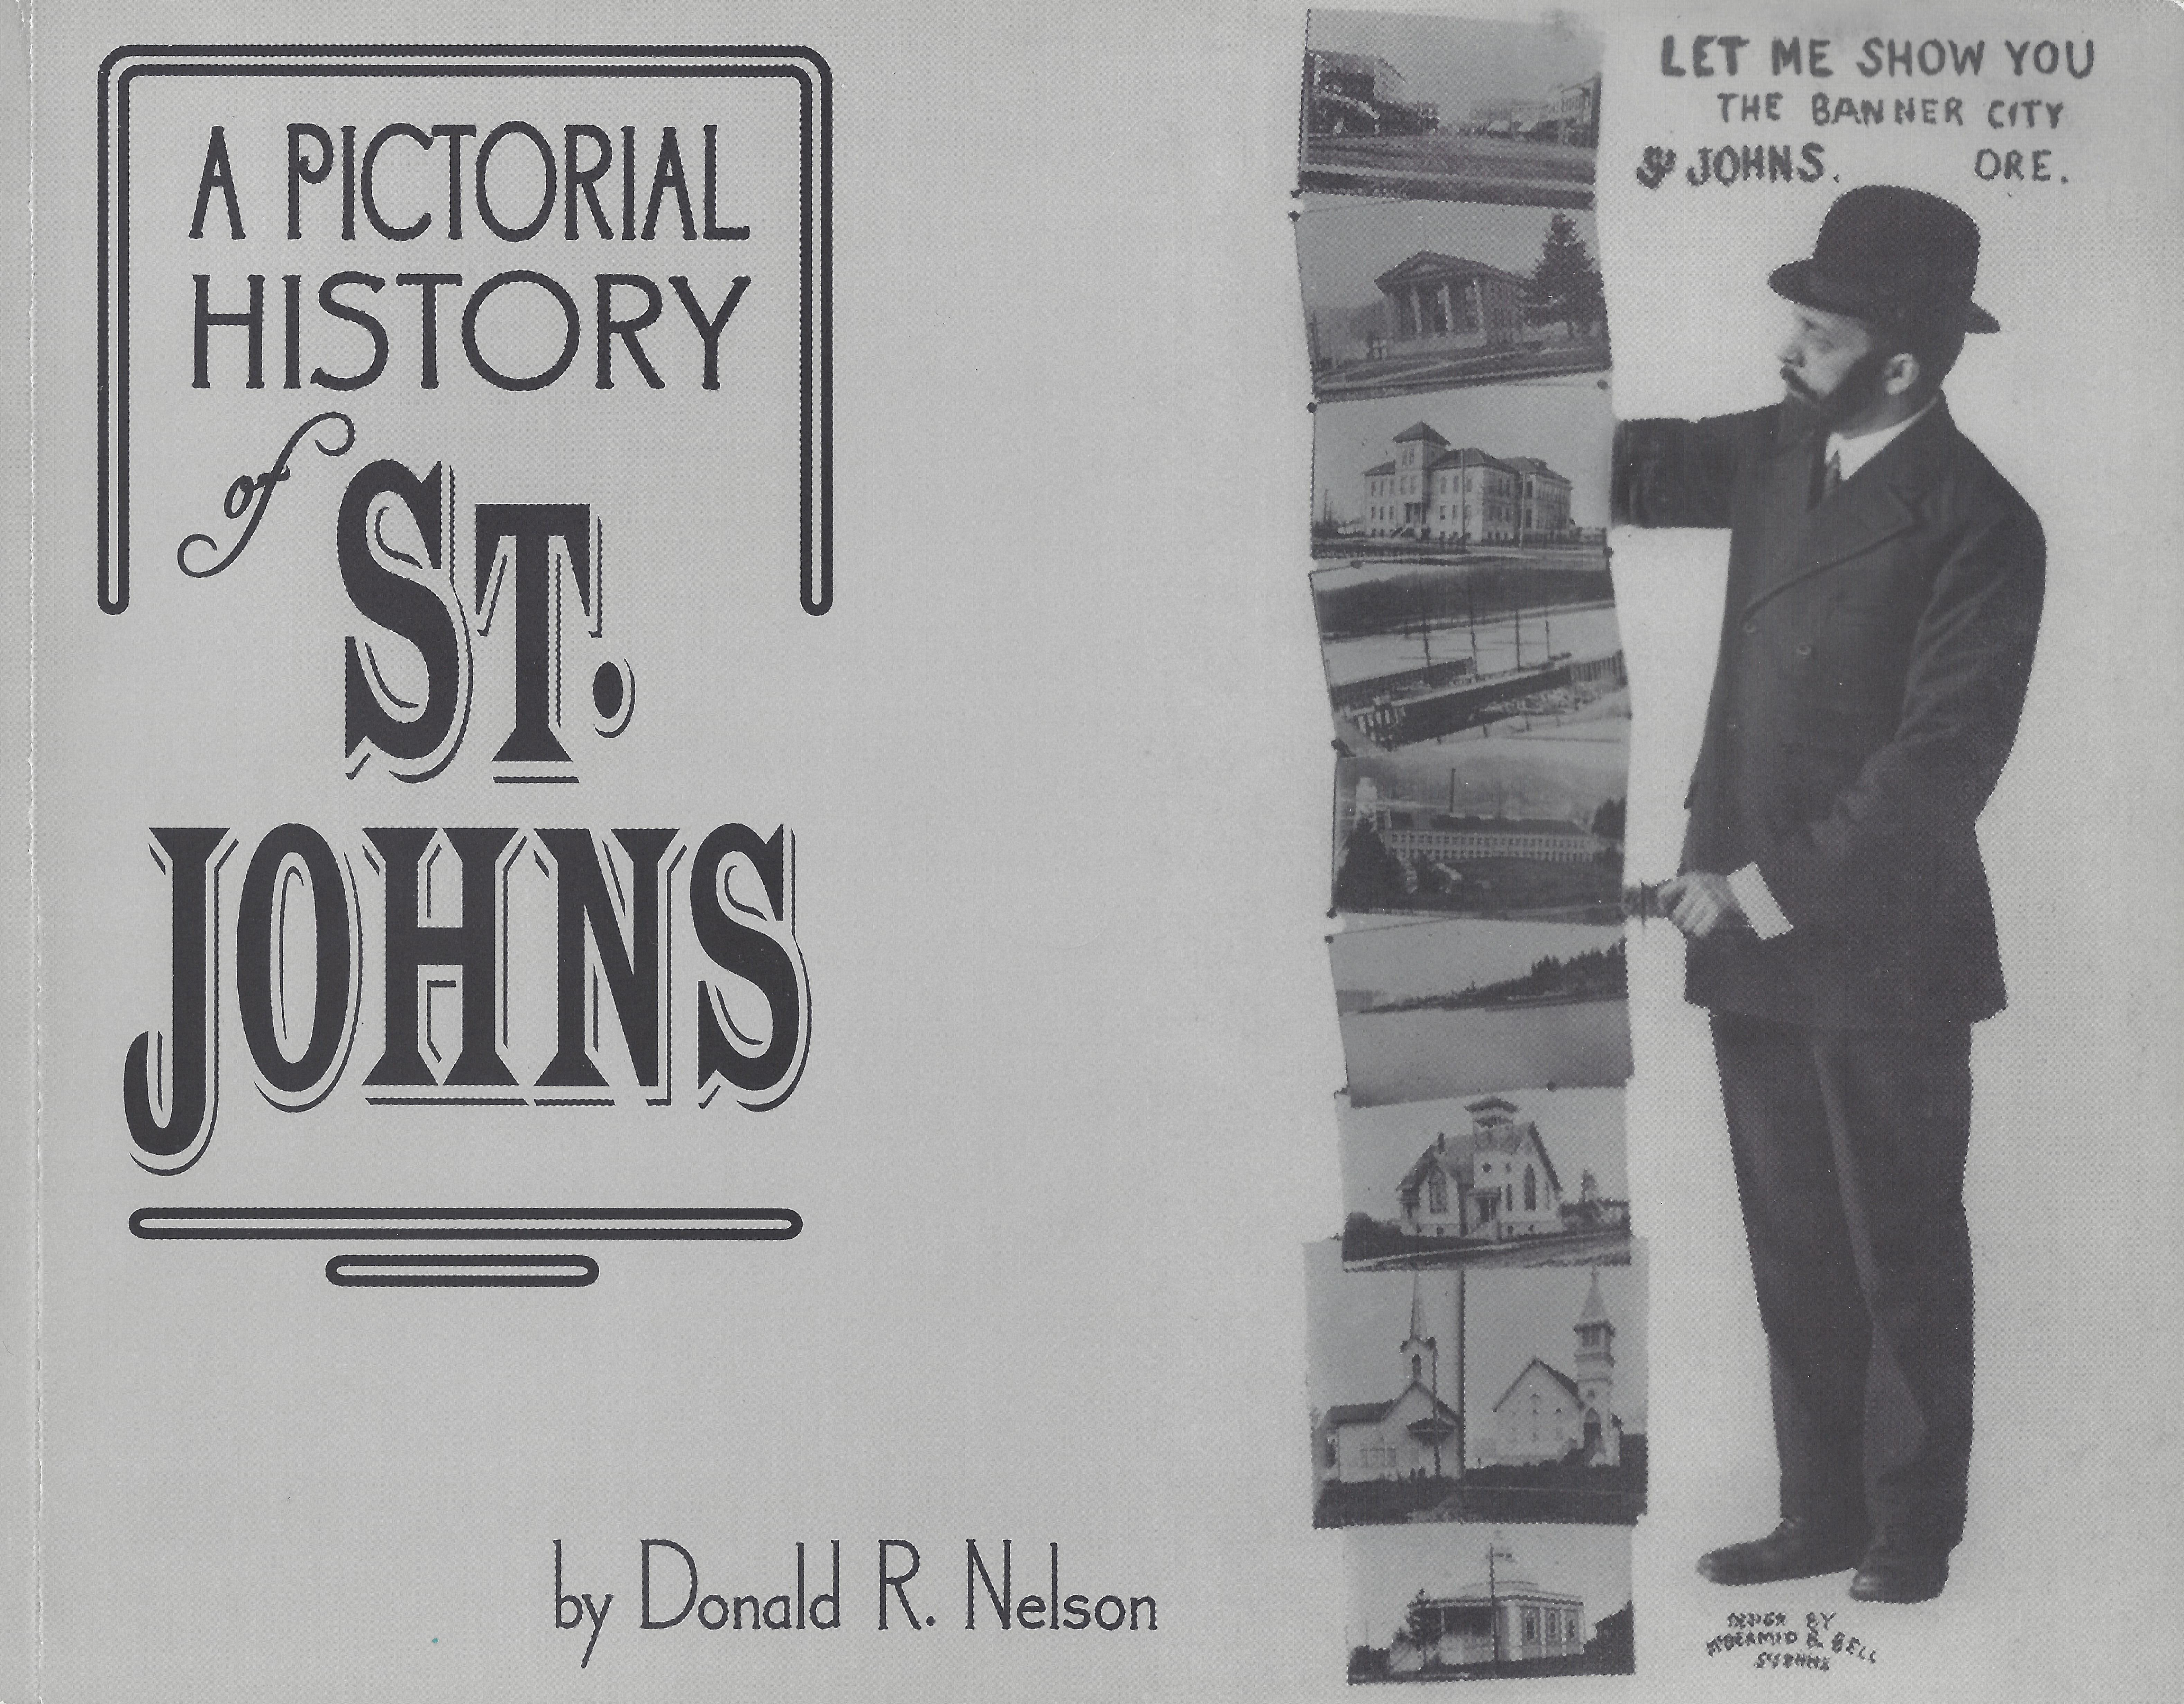 pictorial-st-johns-cover